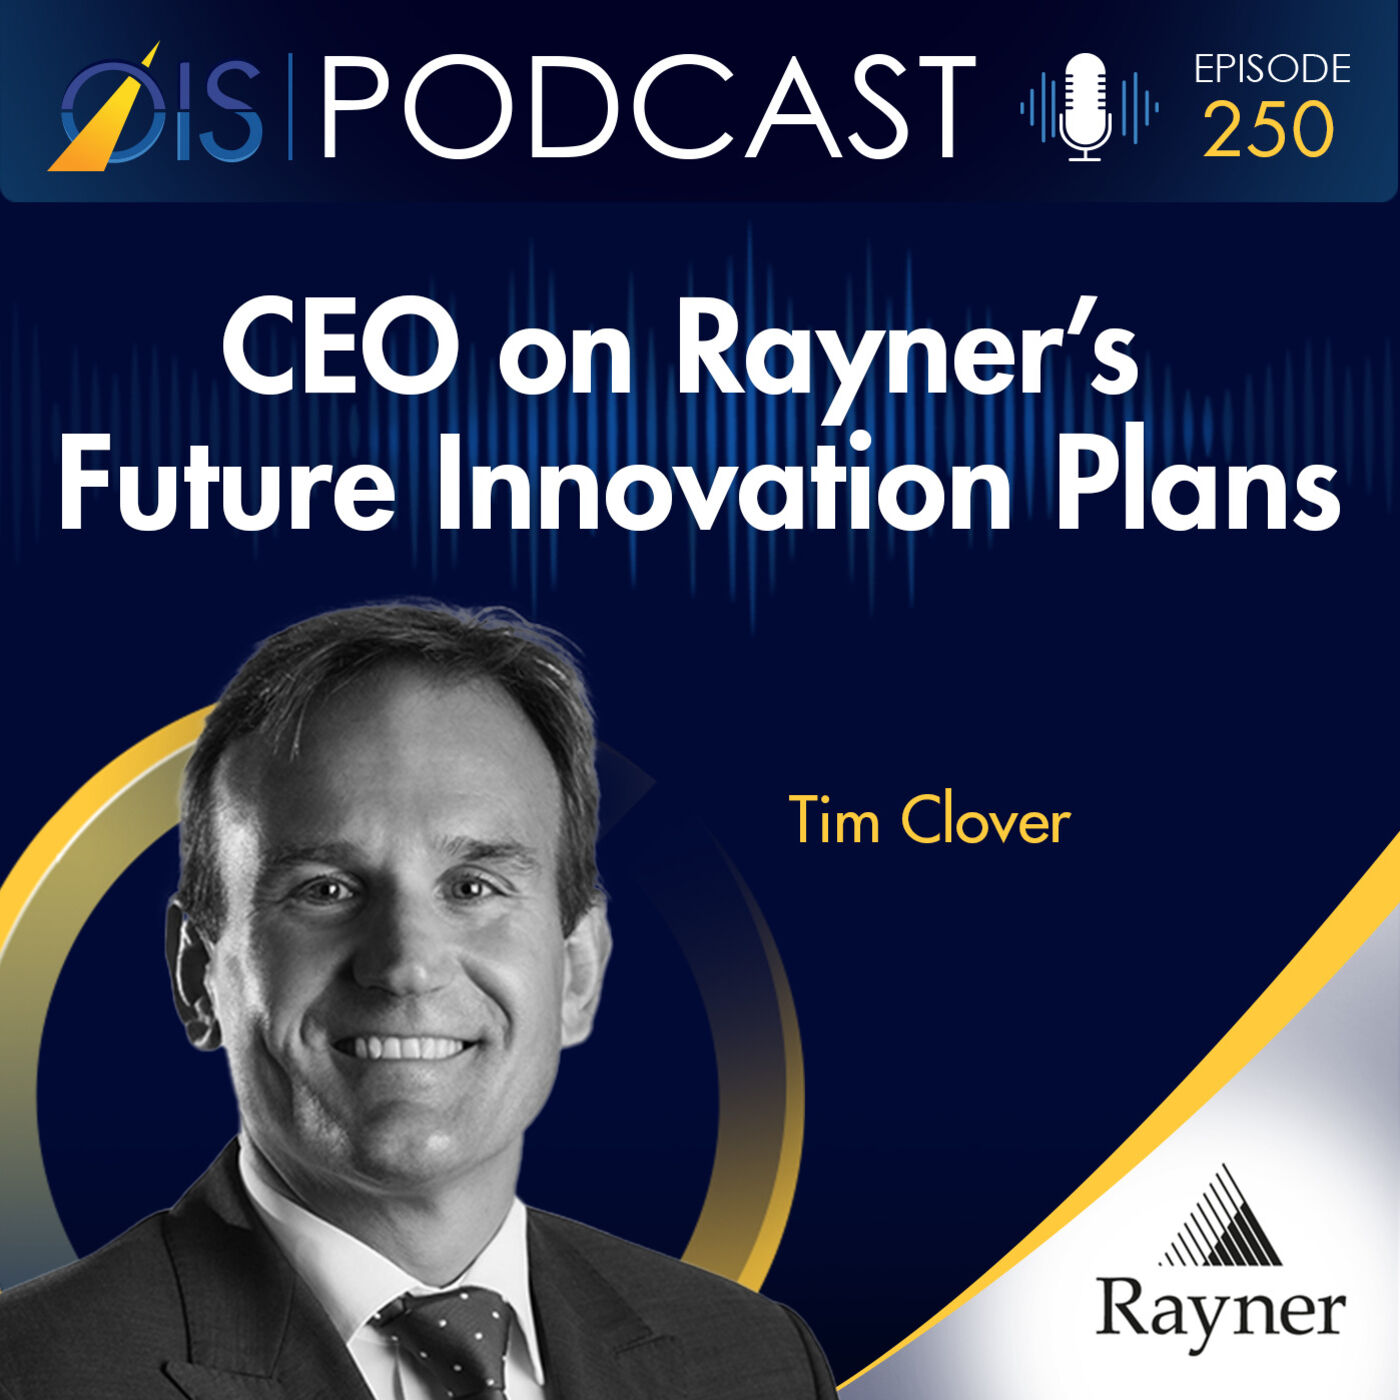 Tim Clover, CEO of Rayner Talks About the Company's Deep History in Ophthalmology, As Well As Their Future Plans For Innovation